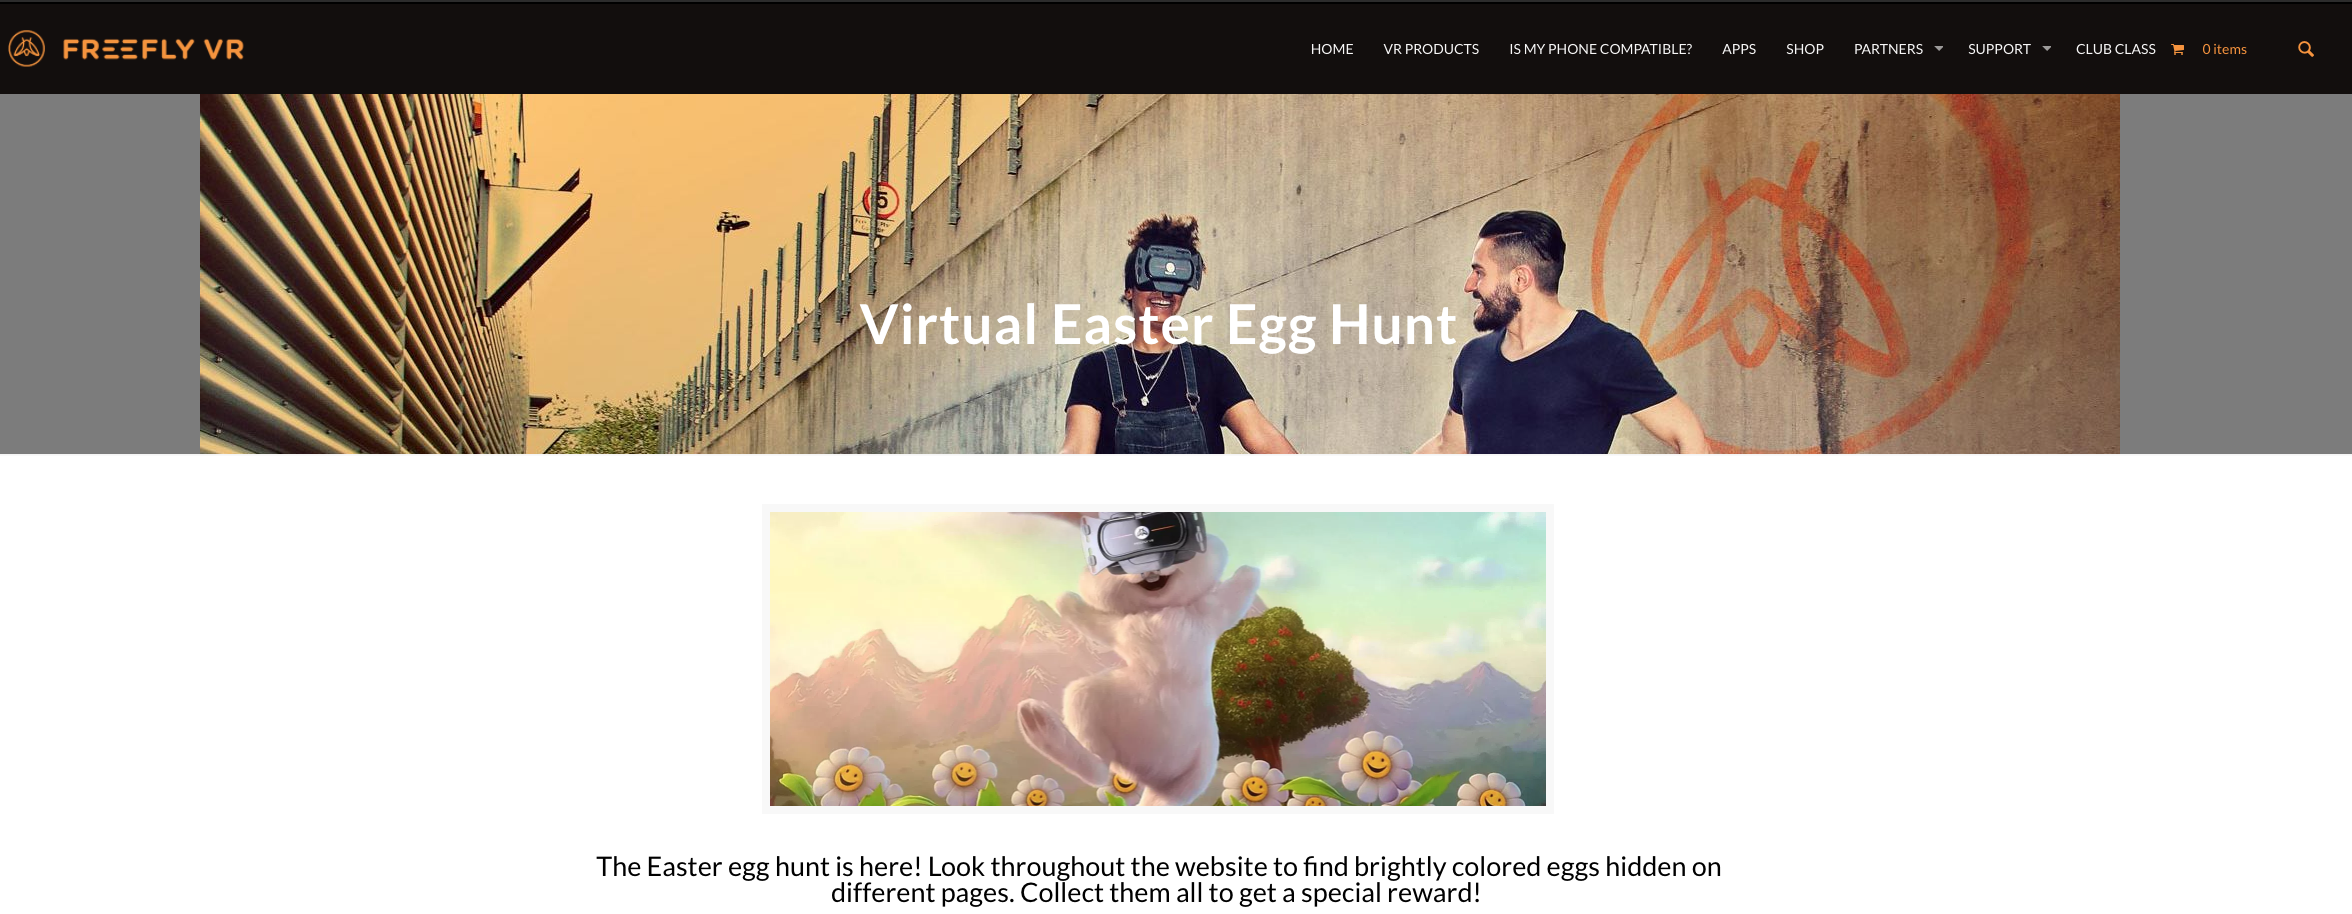 FreeflyVR Easter egg hunt on website